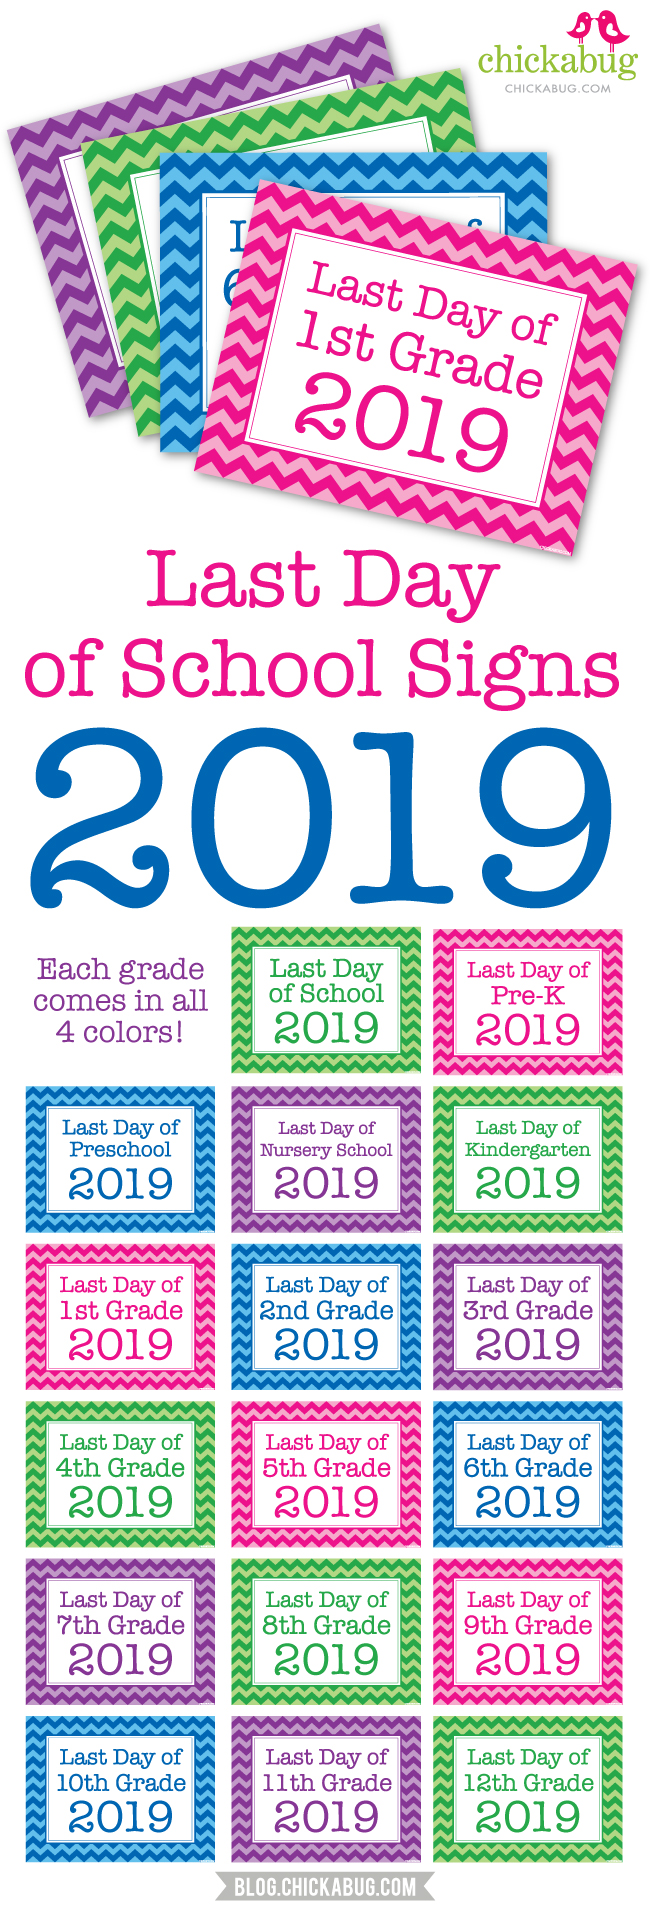 graphic regarding Last Day of Preschool Sign Printable named Ultimate Working day of College Signs and symptoms 2019 Chickabug